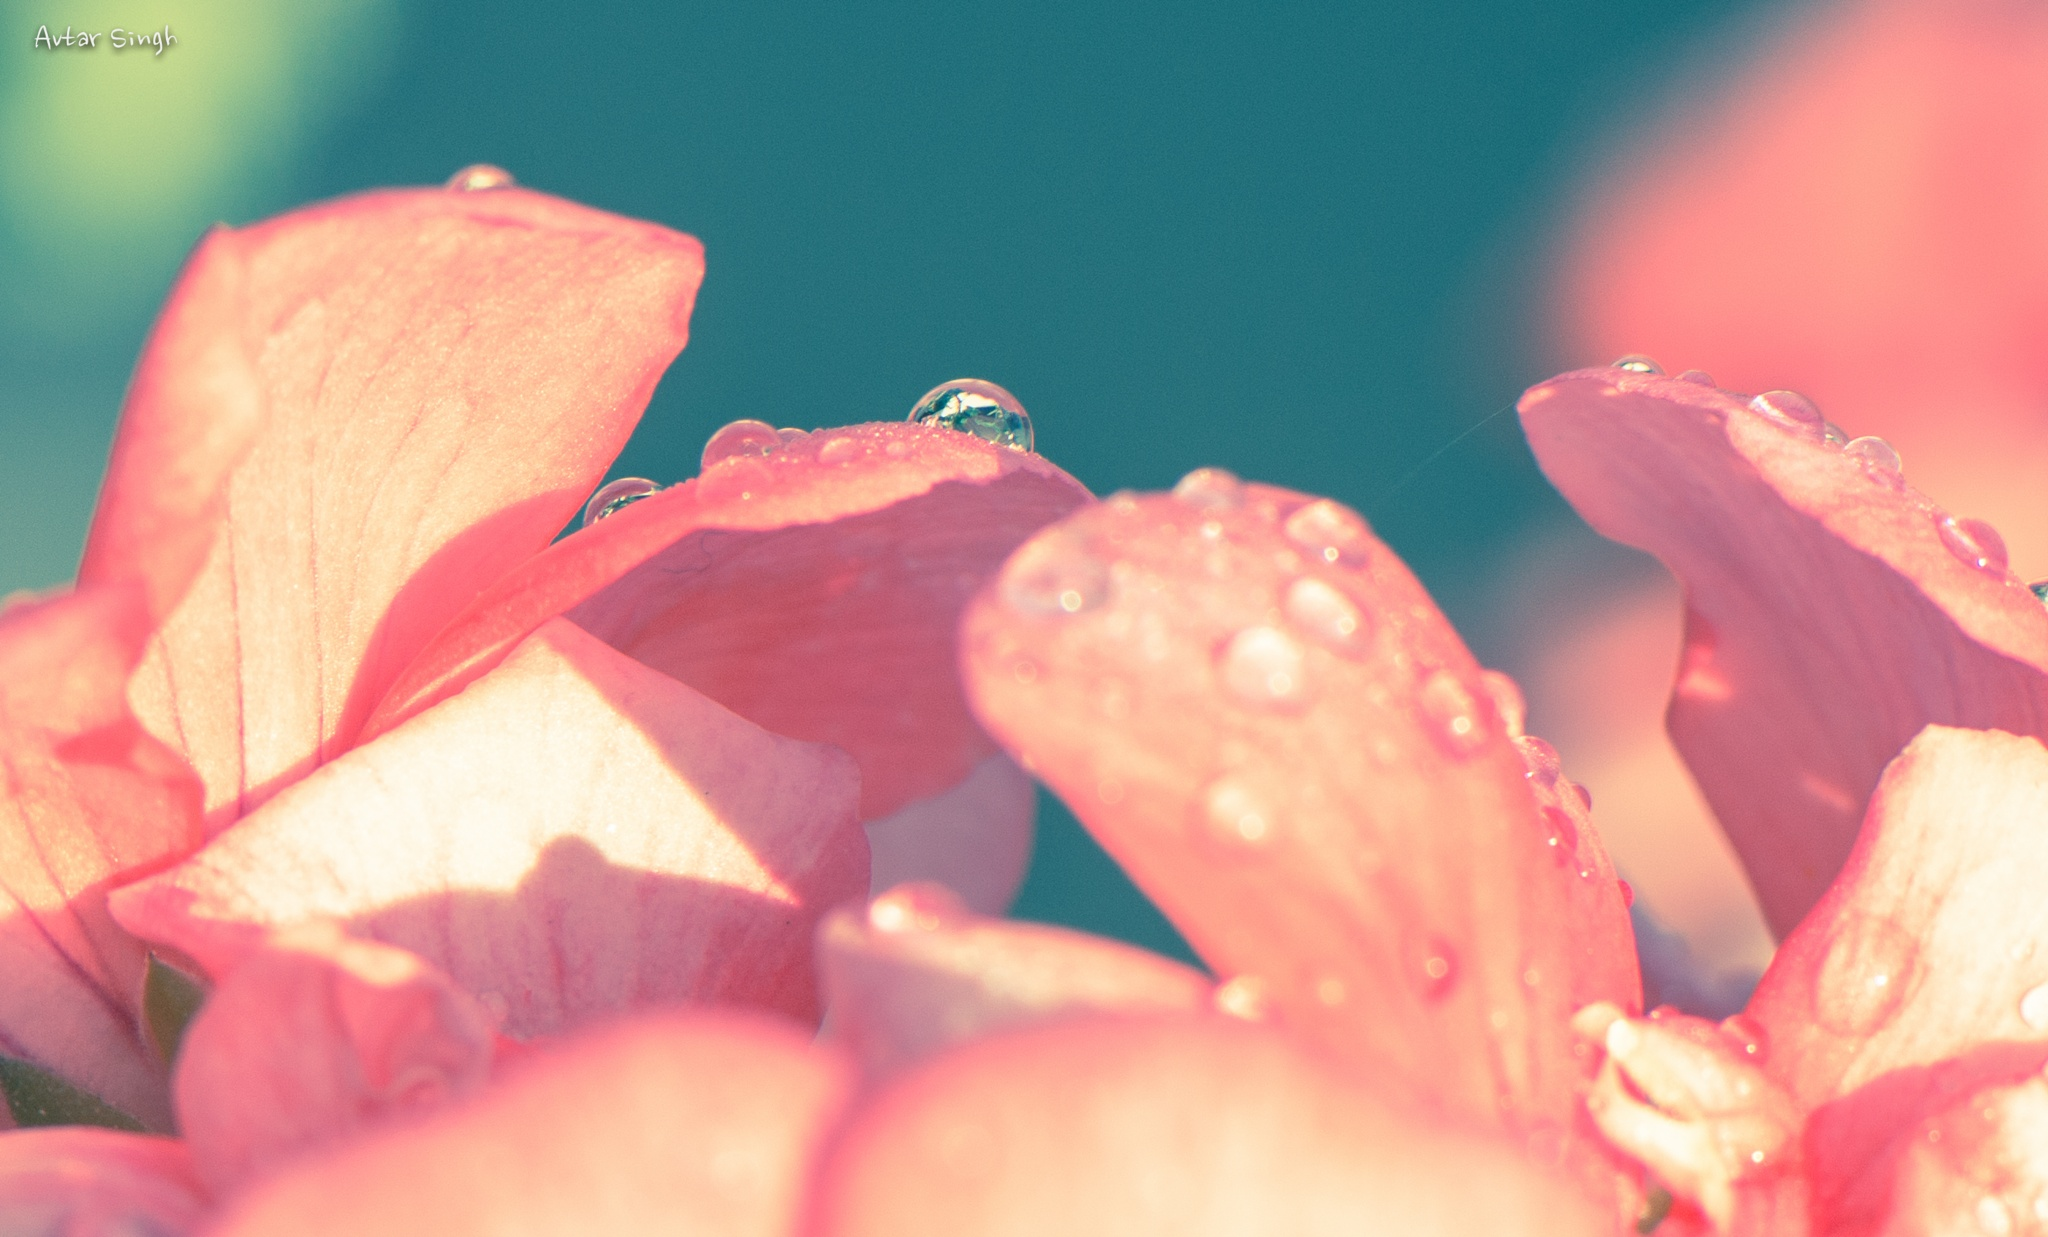 Without rain, there is no life. by Avtar Singh